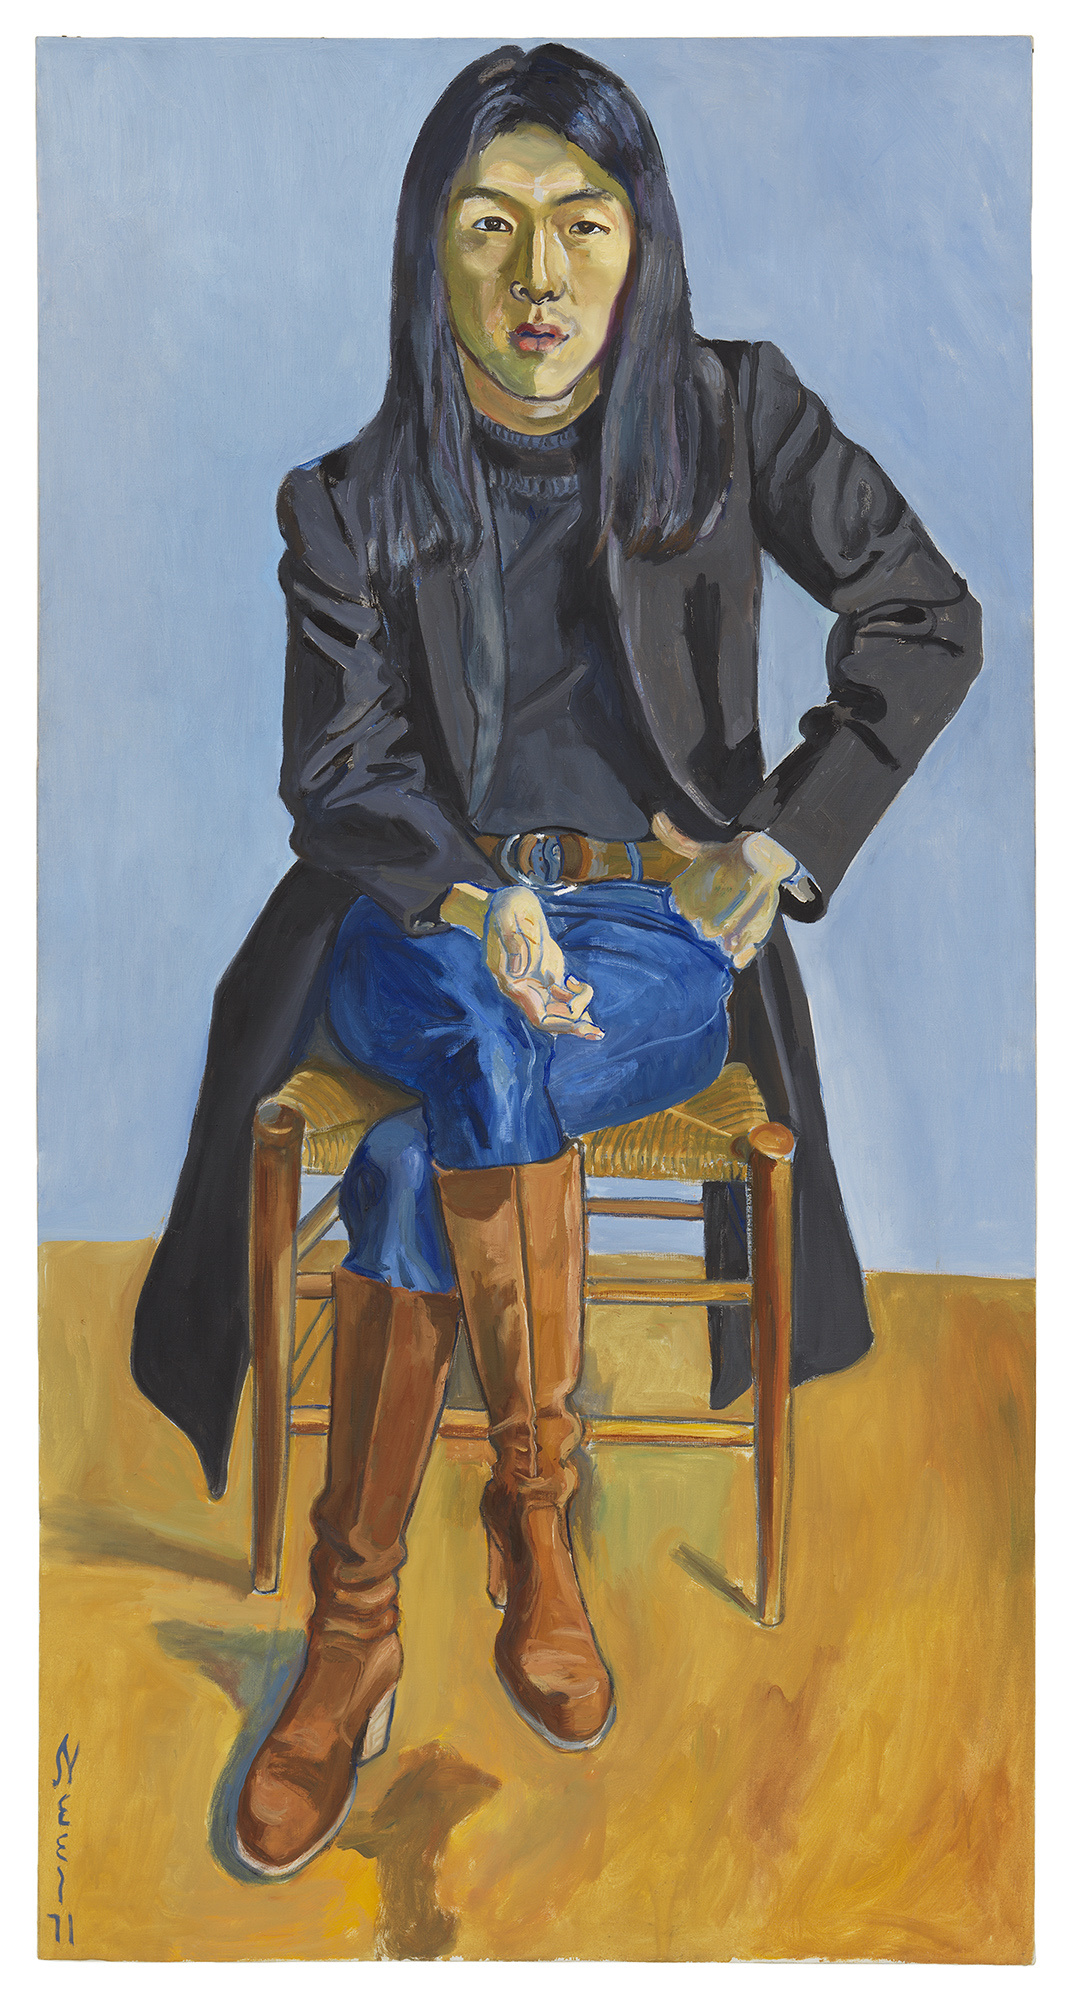 Alice Neel, Ron Kajiwara, 1971. © The Estate of Alice Neel. Courtesy David Zwirner, New York/London and Victoria Miro, London.